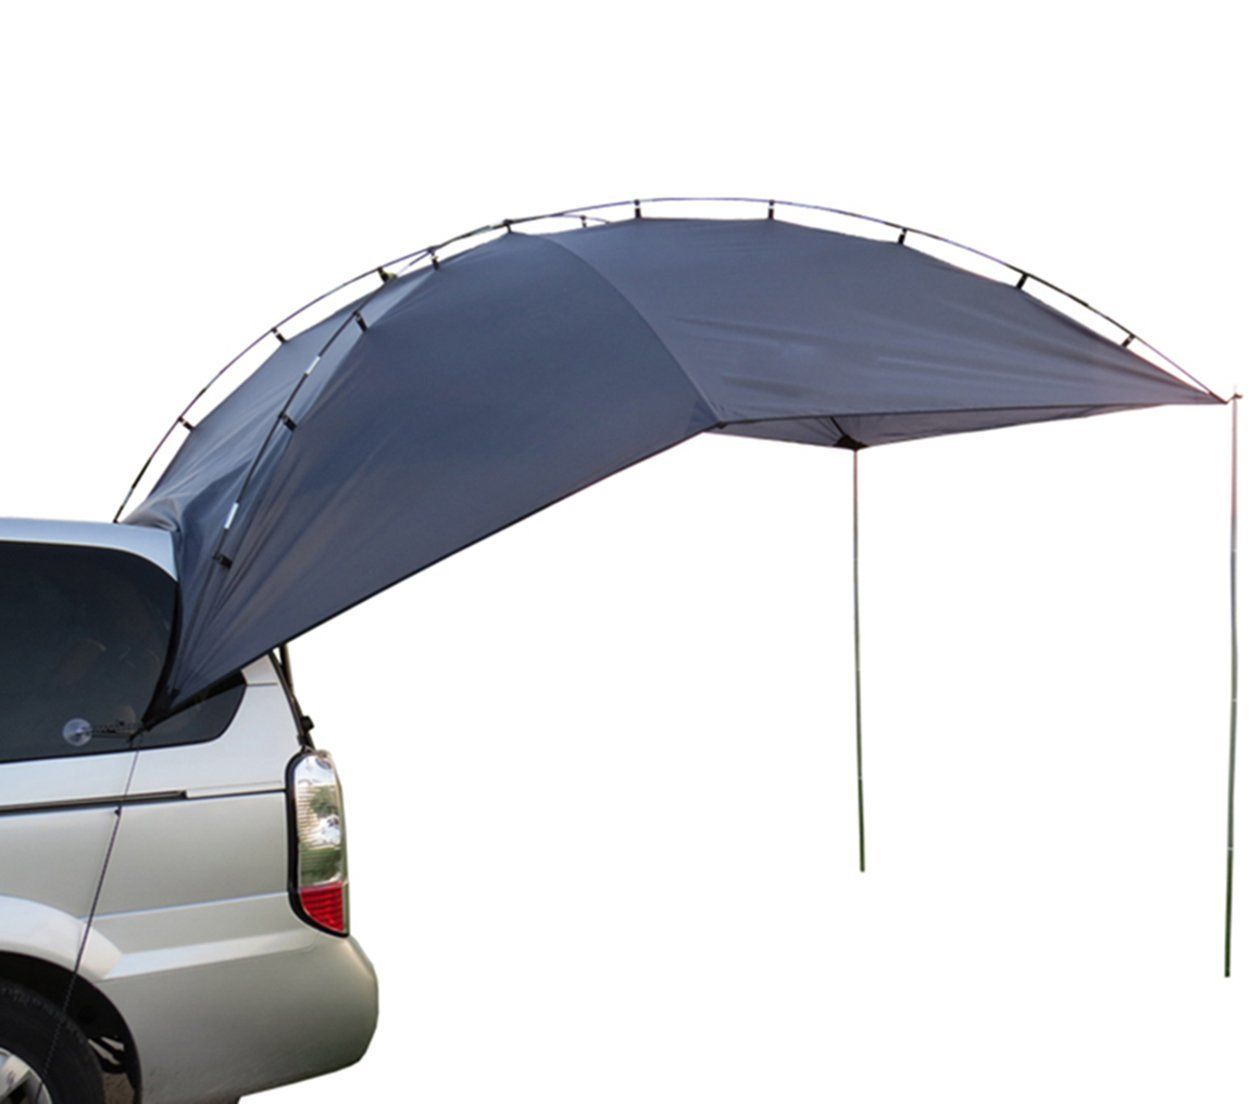 Hasika Awning C&er Trailer Roof Top Family Tent for Beach C&ing SUV MPV Hatchback  sc 1 st  Pinterest & Hasika Awning Camper Trailer Roof Top Family Tent for Beach ...